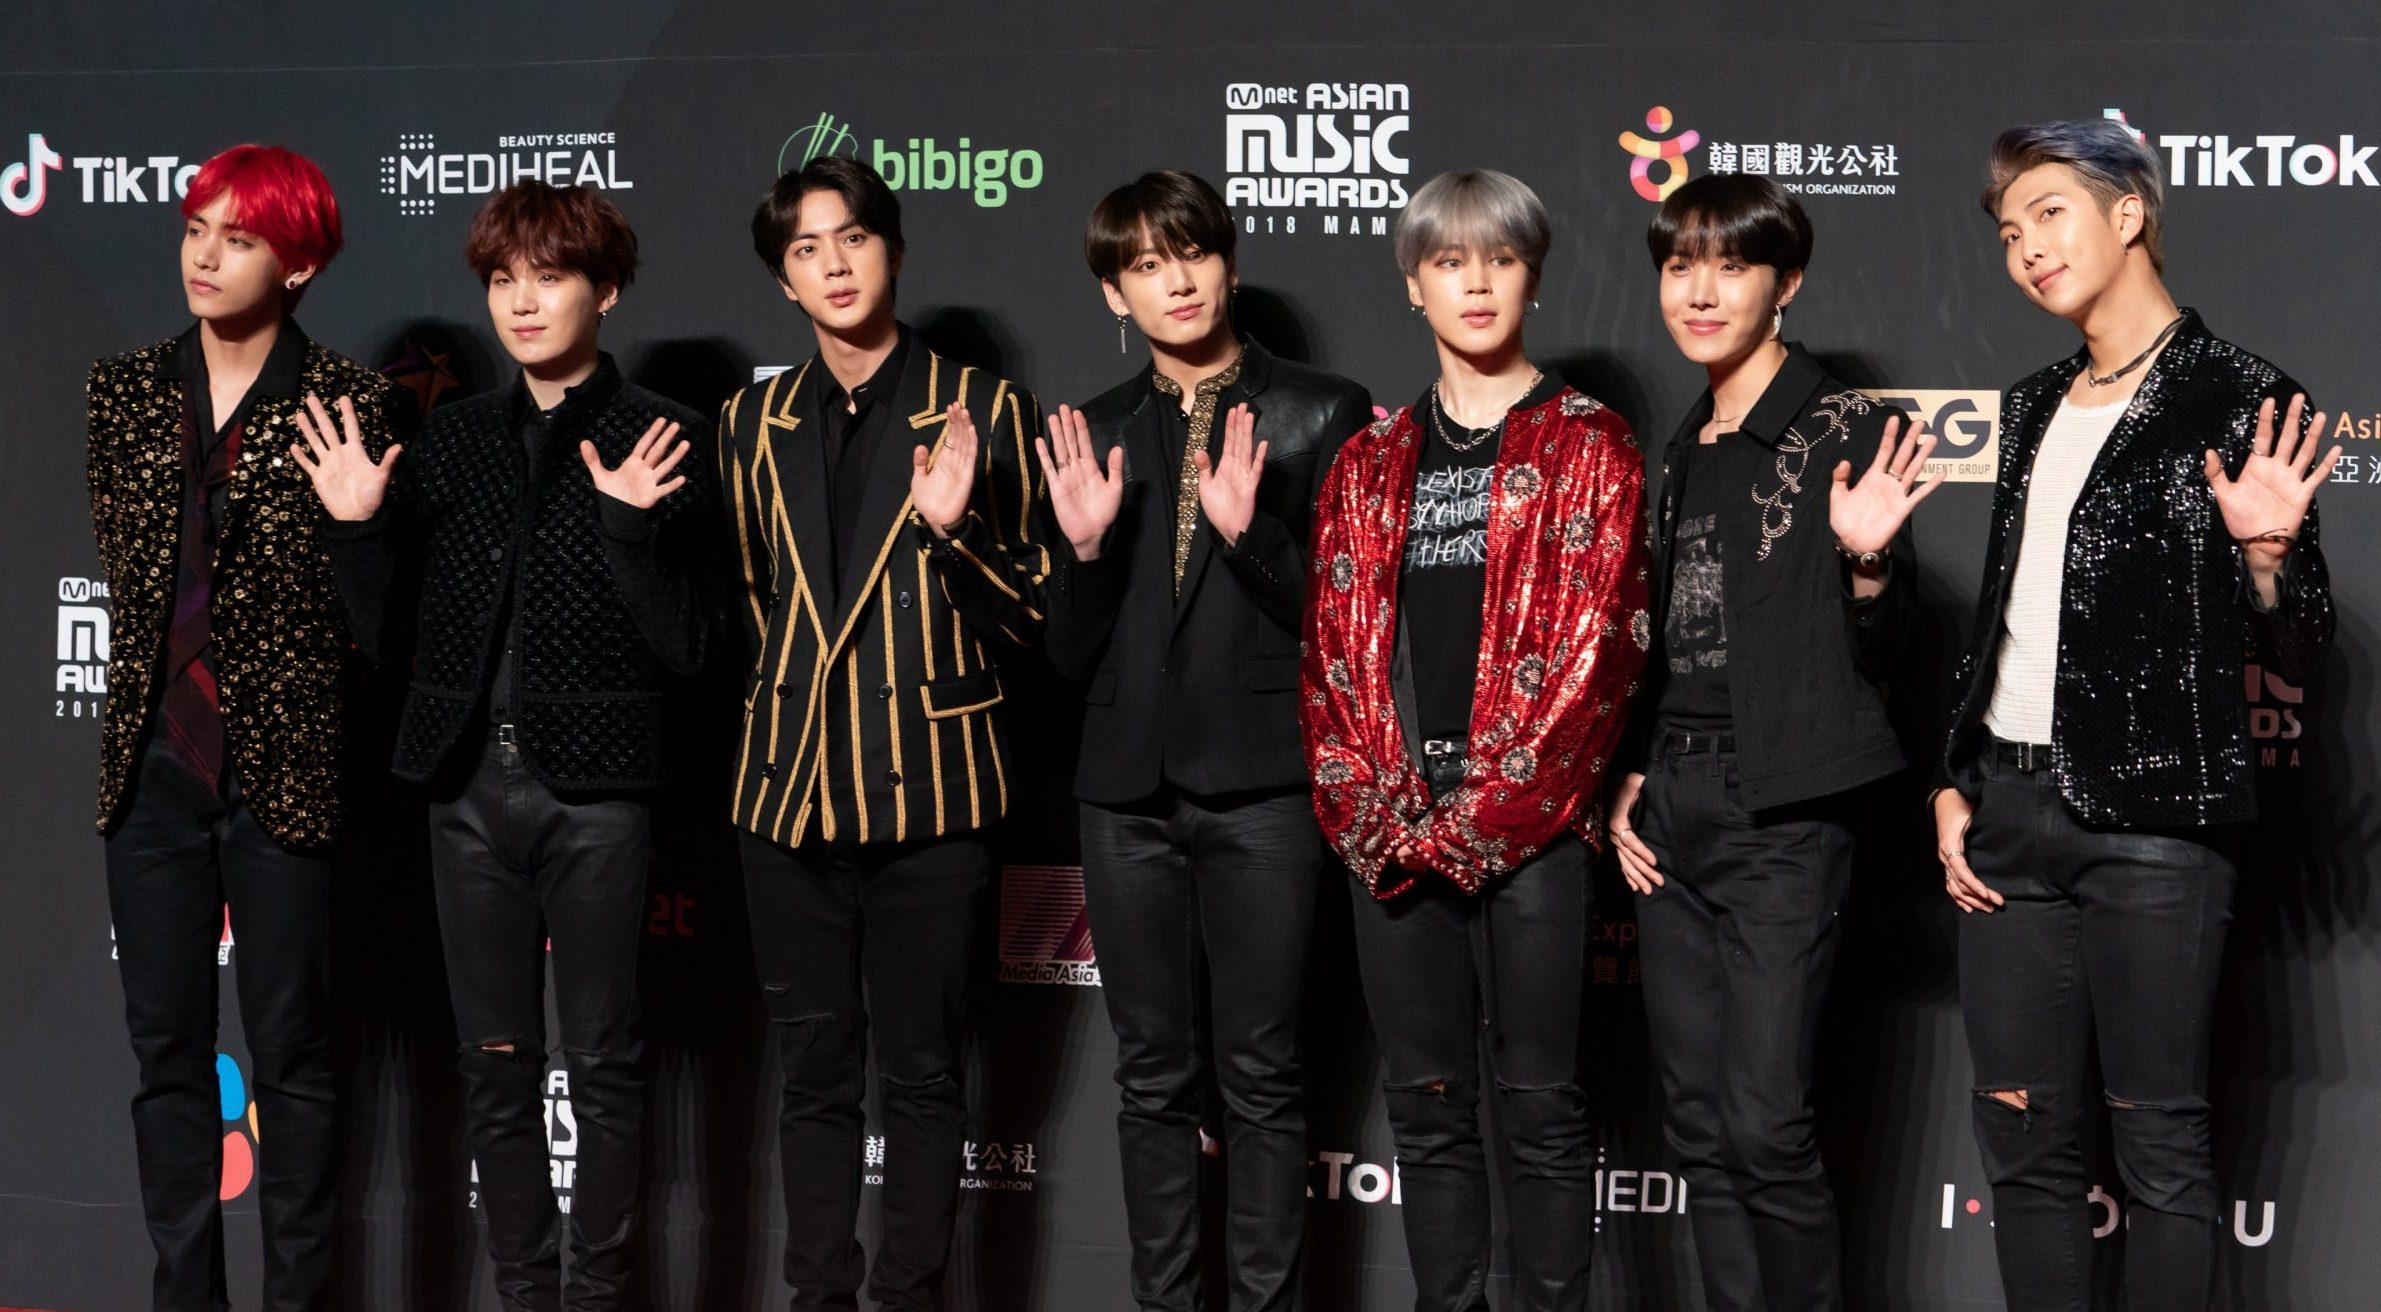 HONG KONG, HONG KONG - DECEMBER 14: V, Suga, Jin, JungKook, Jimin, J-Hope and RM of BTS attend the 2018 Mnet Music Awards in Hong Kong at AsiaWorldExpo on December 14, 2018 in Hong Kong, Hong Kong. (Photo by Anthony Kwan/Getty Images)